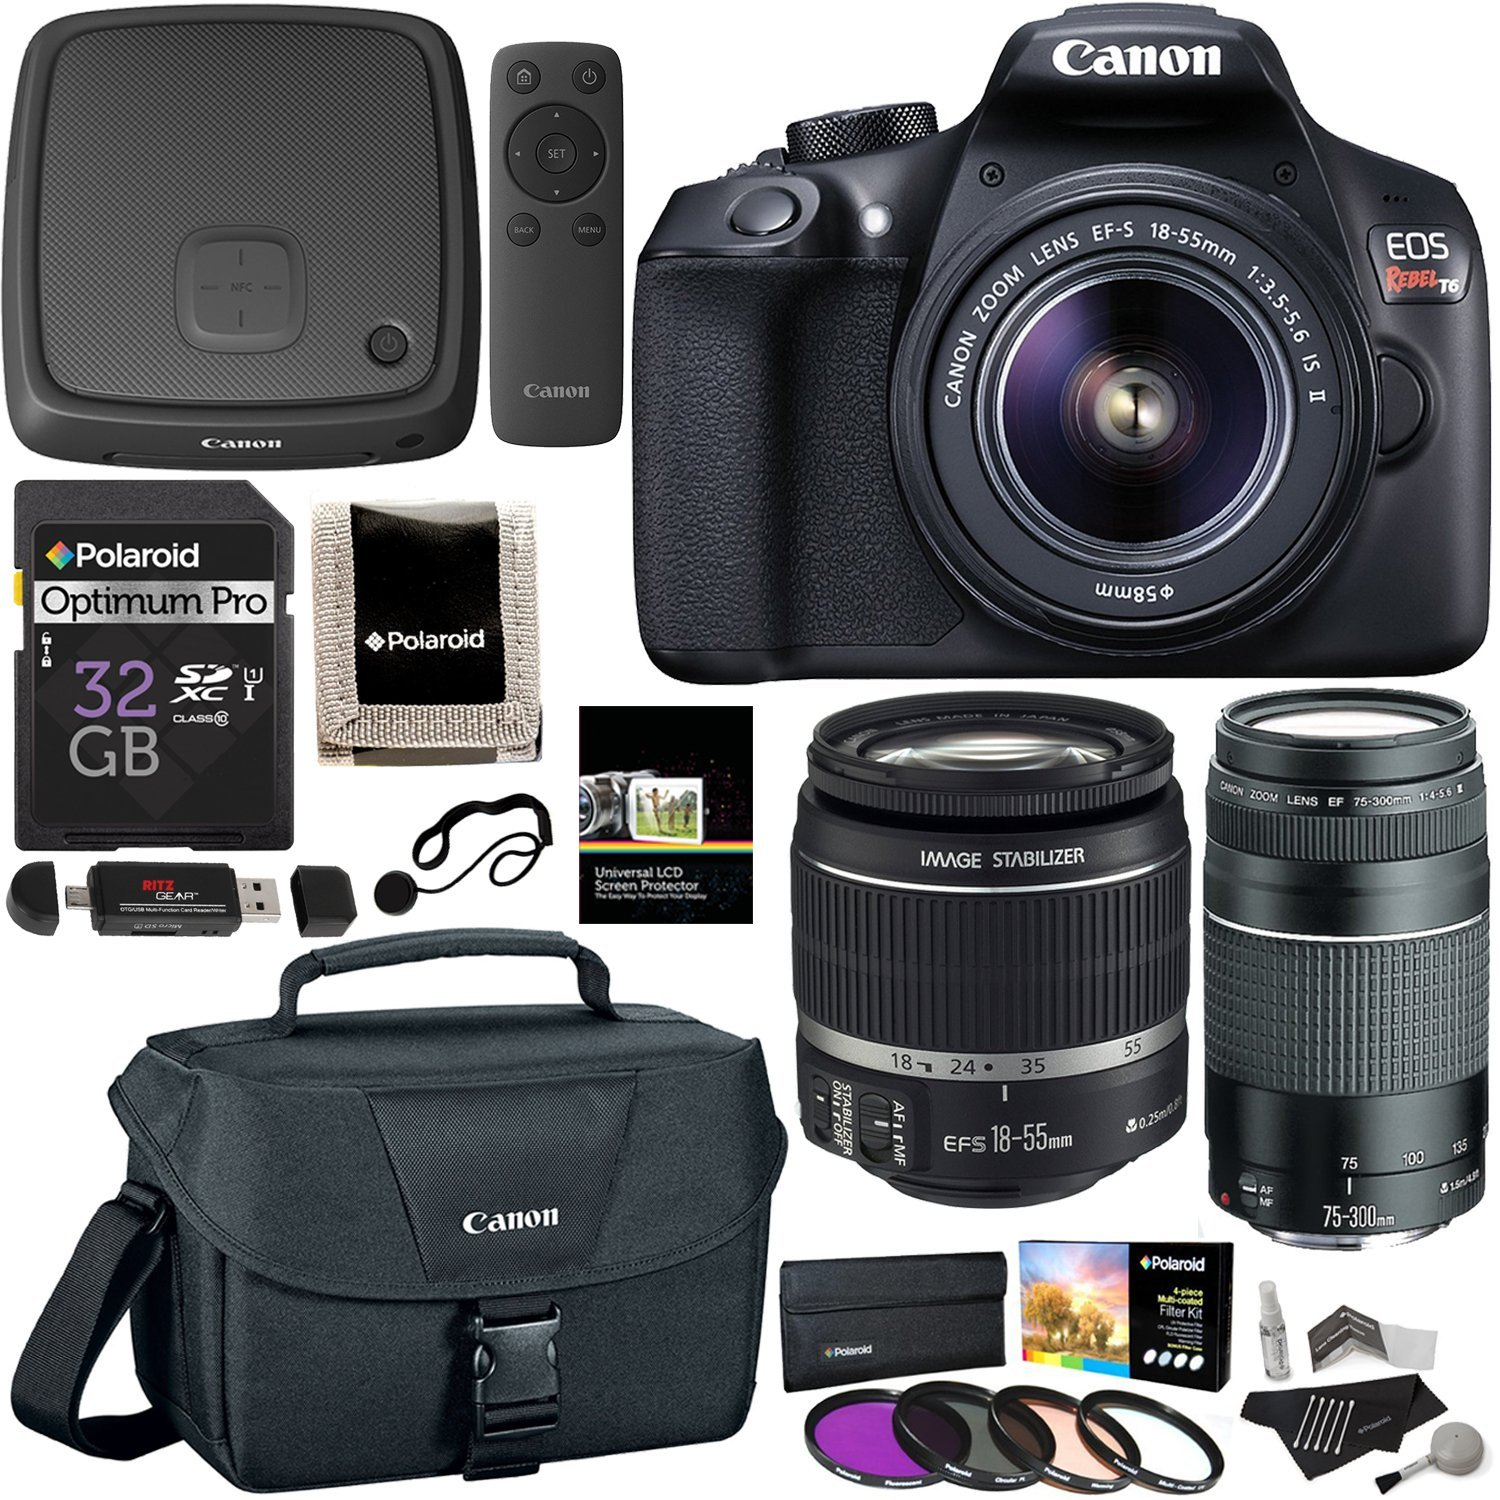 Canon EOS Rebel T6 Digital SLR Camera Kit with EF-S 18-55mm f/3.5-5.6 IS II Lens, Canon EF 75-300mm f/4-5.6 III Telephoto Zoom Lens, Canon Connect Station CS100, 32GB Memory, Filters Accessory Bundle